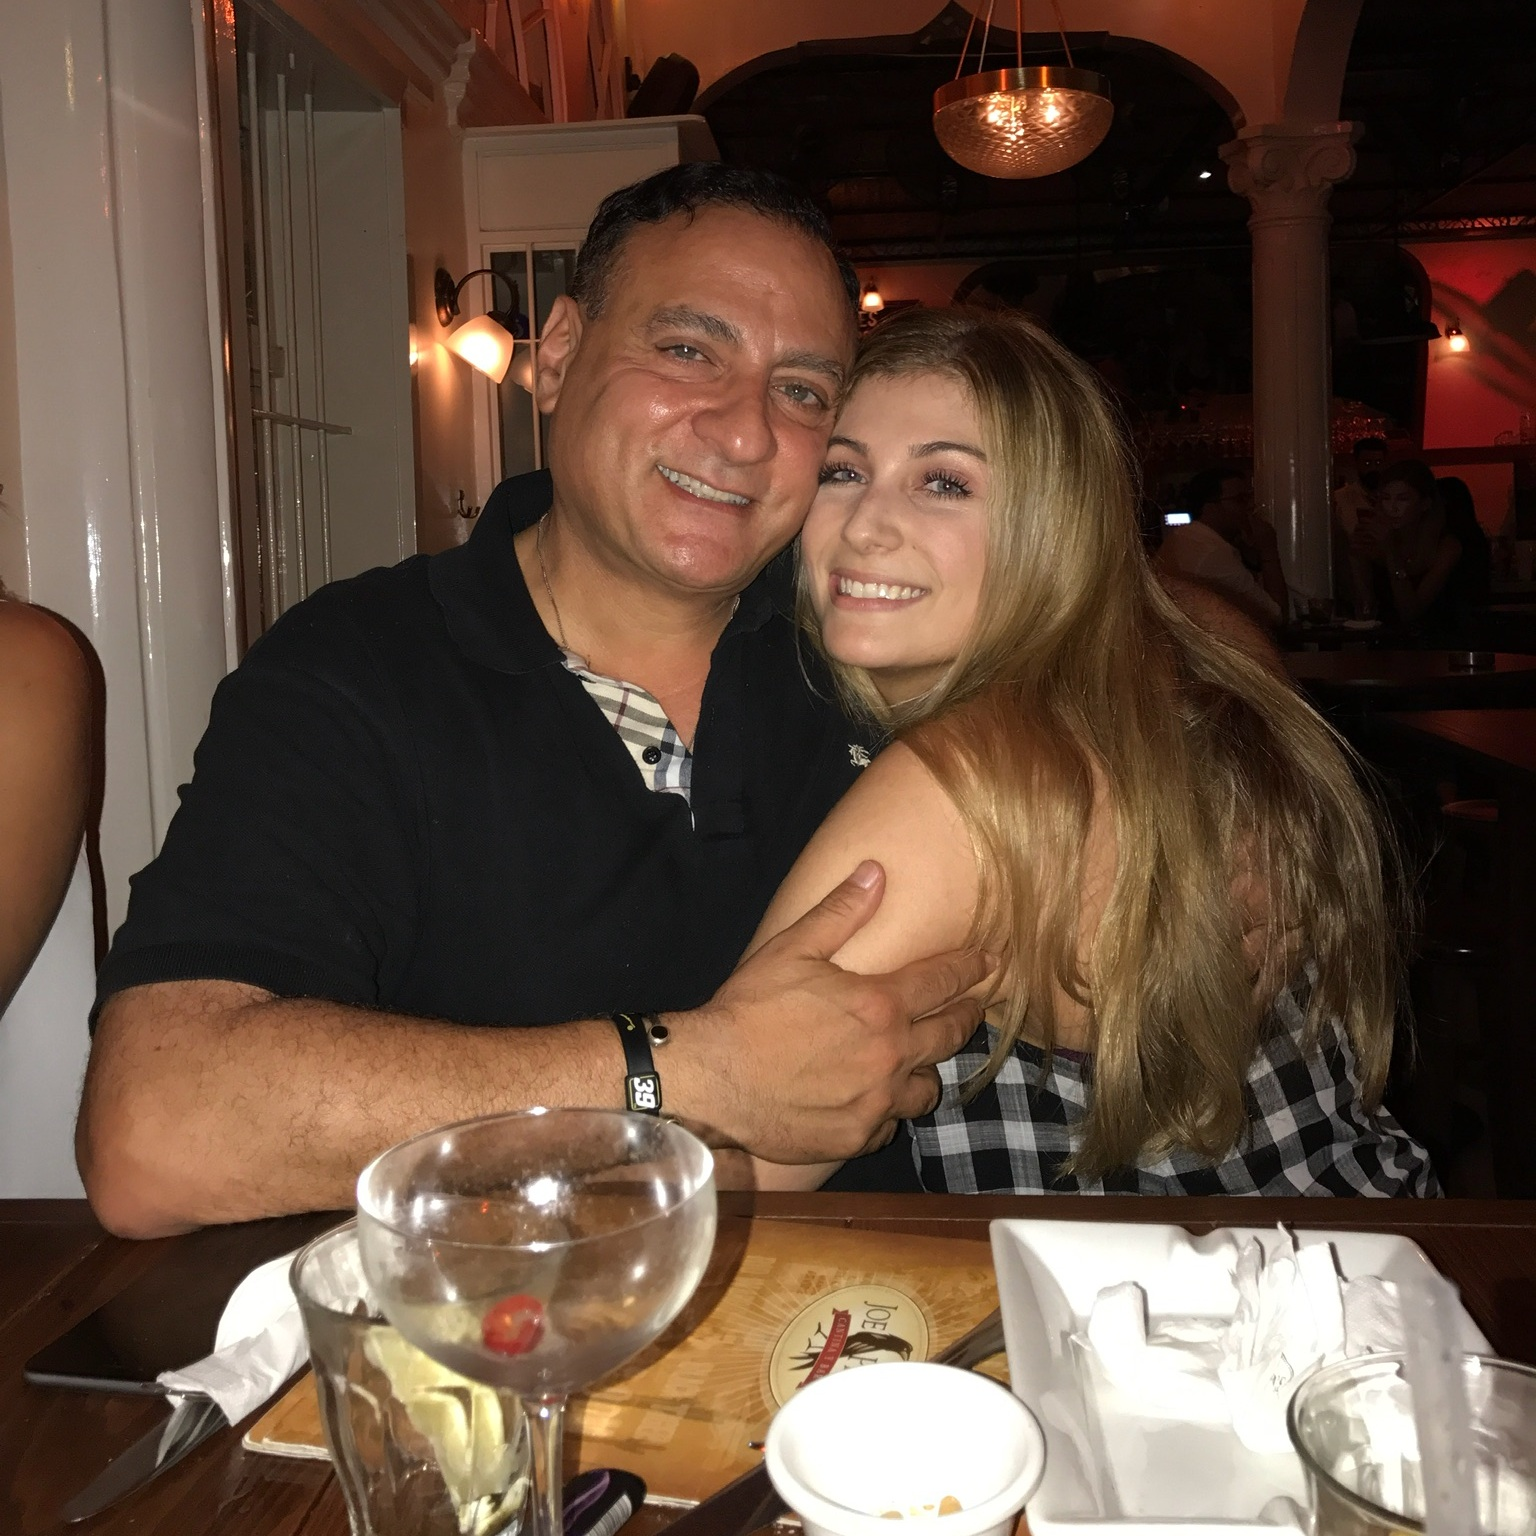 """Chloe   Orange County, CA    What is your dad's name?  Gihad   What's your favorite memory of your dad?  His ability to make a room feel whole. Not one memory can suffice. His endless jokes, advice, smile and joy. The way he called my sisters and I """"my girls"""".   What do you miss (or not miss) about your dad?  I miss his presence. I miss his eggs and popcorn, his loud phone calls in the morning talking to everyone, his days in the garden, sitting having coffee, sitting at night in the bedroom gossiping with my whole family before bed."""